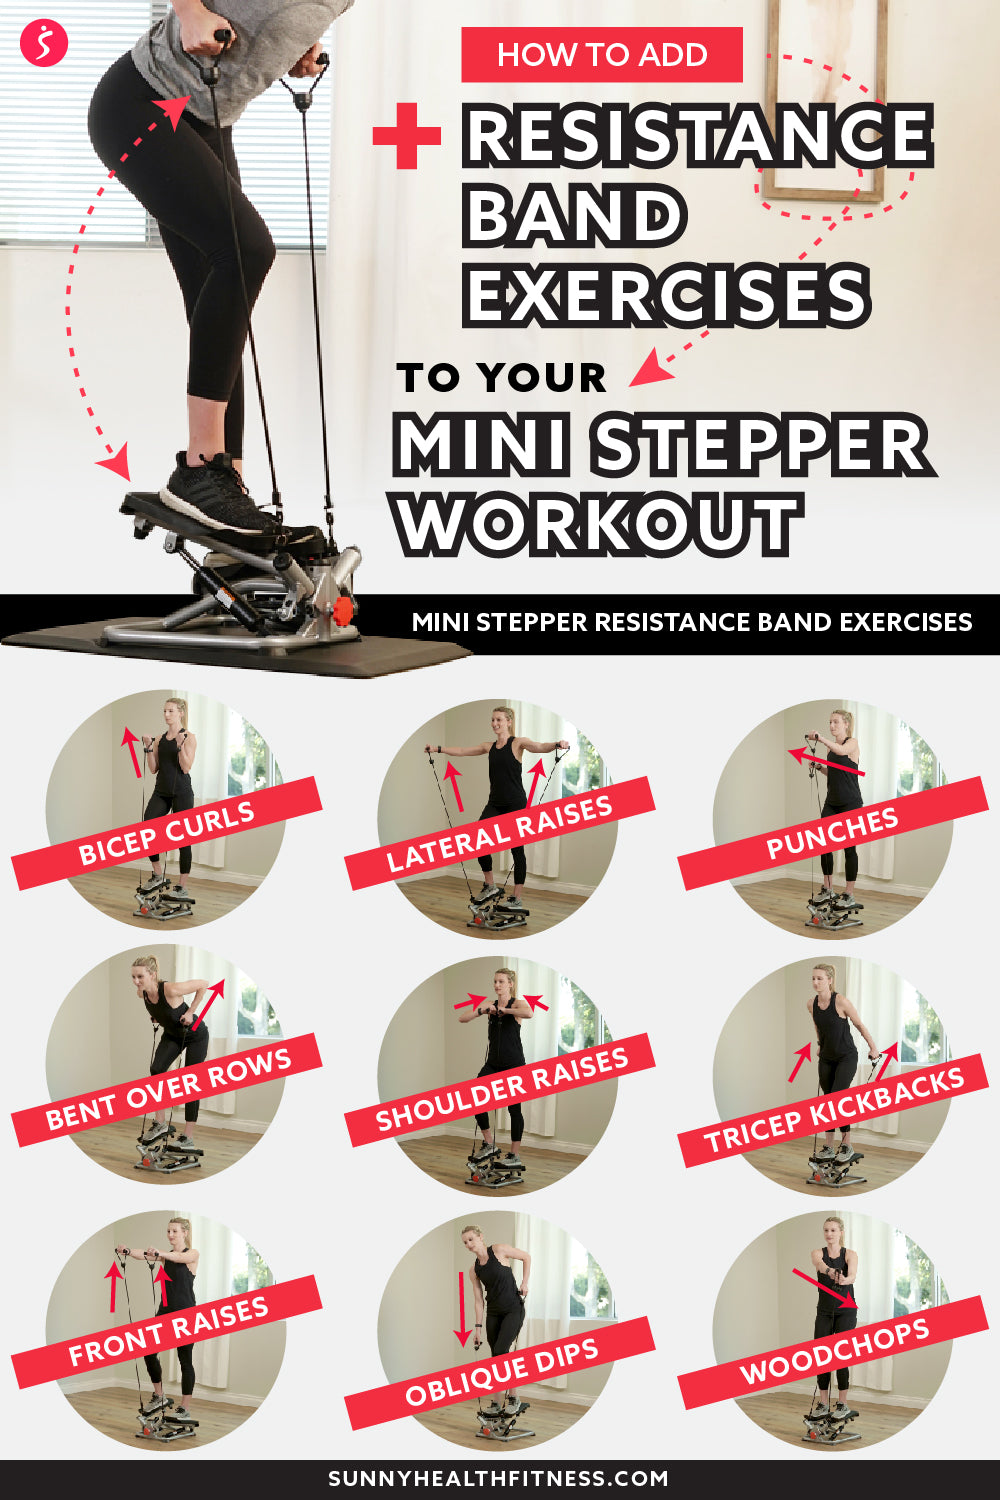 Complete Guide to Add Resistance Band to Your Mini Stepper Workout